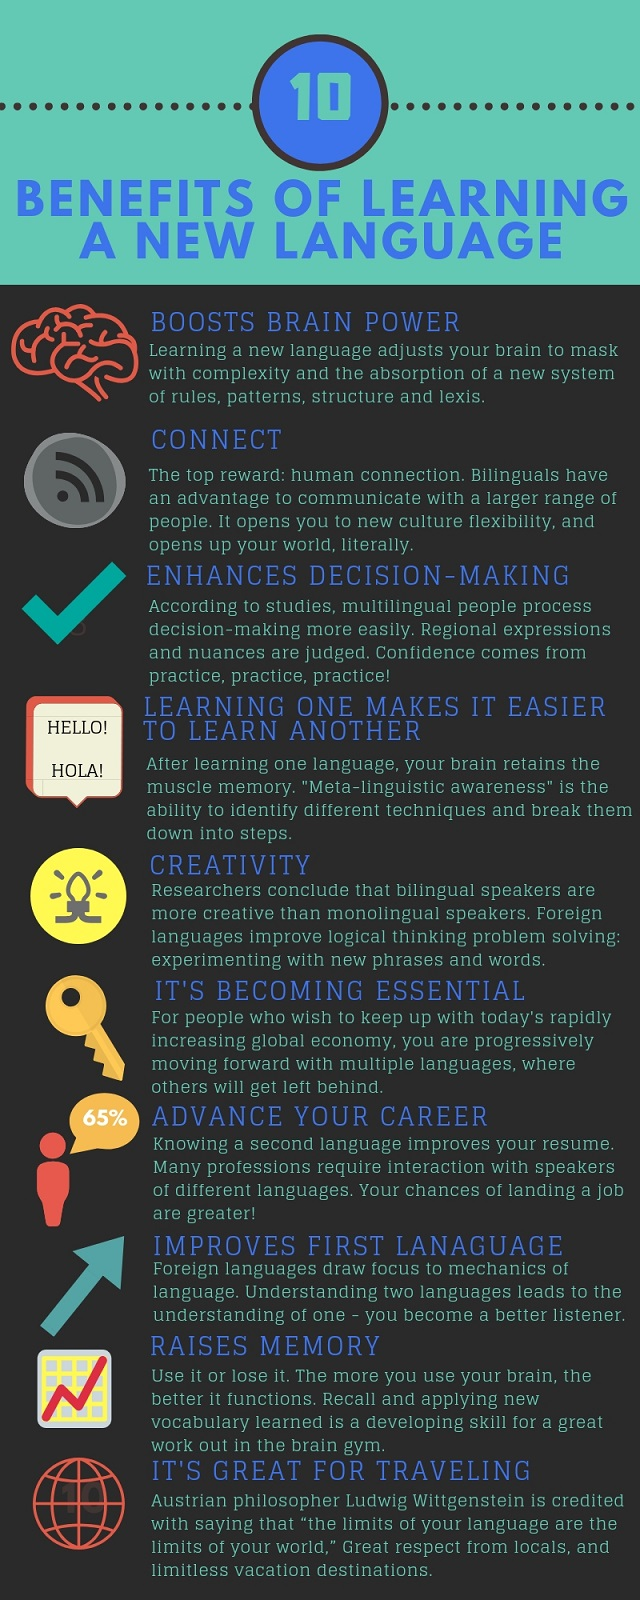 Graphic listing 10 benefits of learning a new language